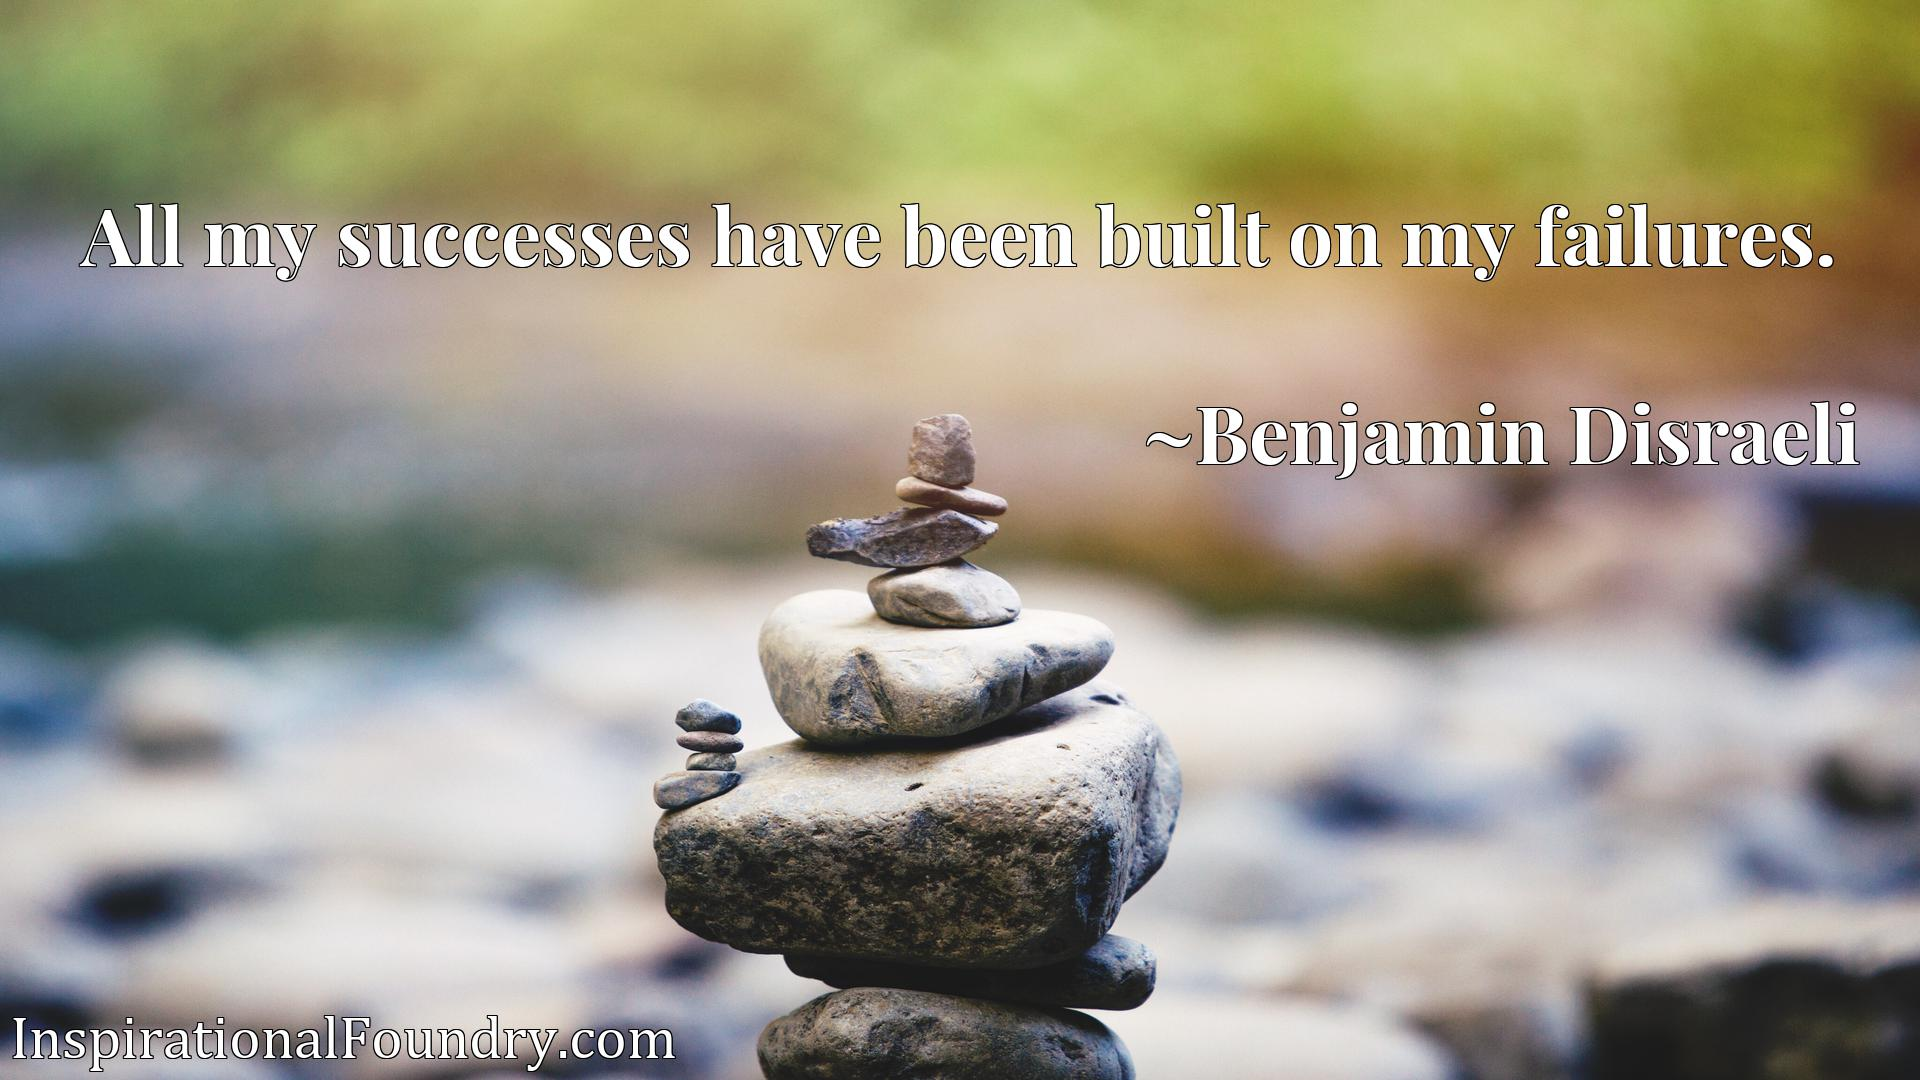 All my successes have been built on my failures.